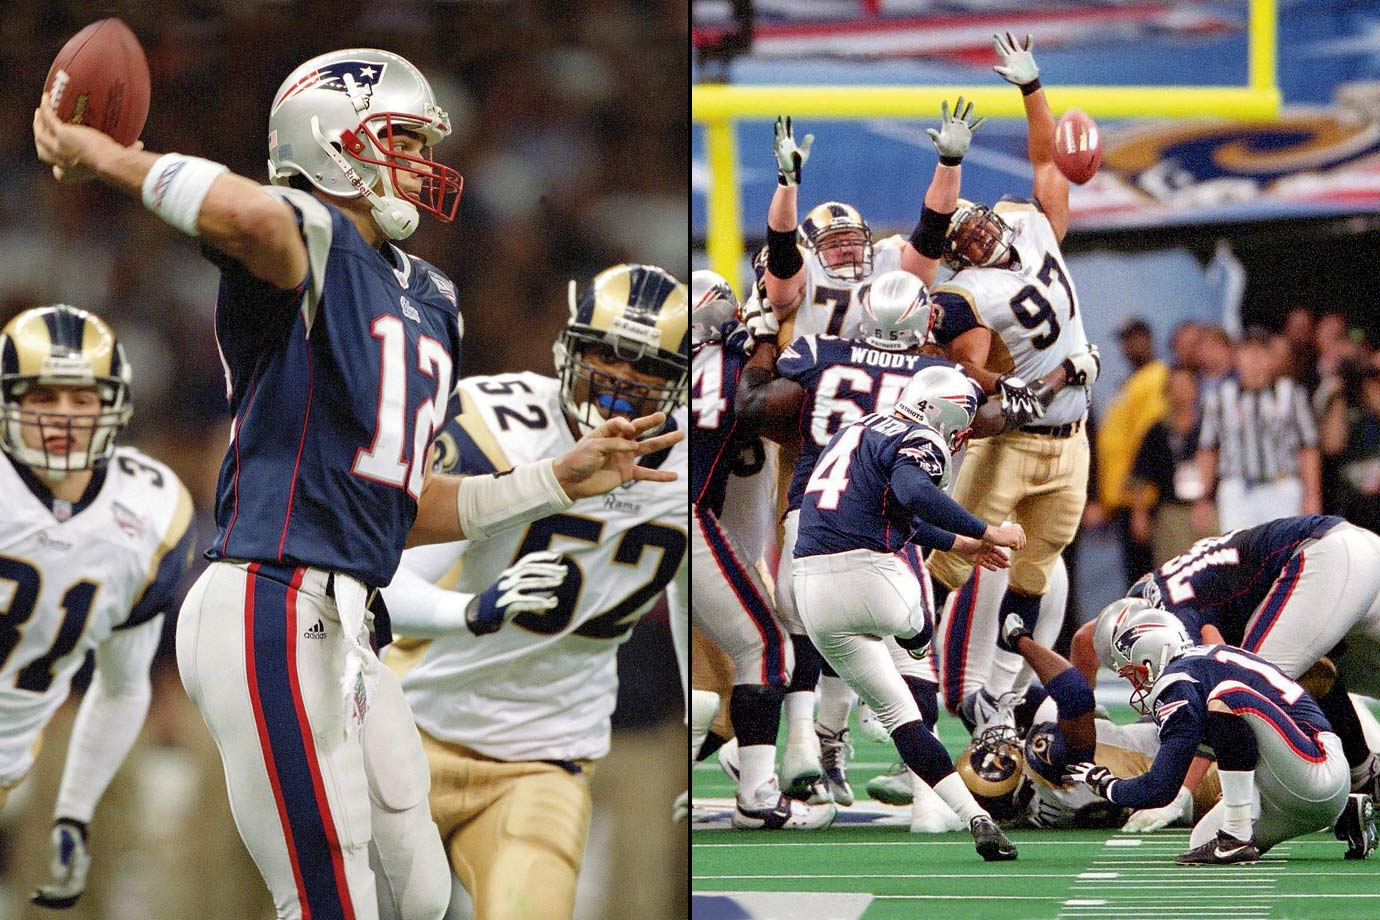 While St. Louis piled up 427 yards of offense, the 14-point favorites held only one lead (3-0) and the Patriots' dynasty was born as Tom Brady set up Adam Vinatieri's 48-yard, game-winning field goal in Super Bowl 36.